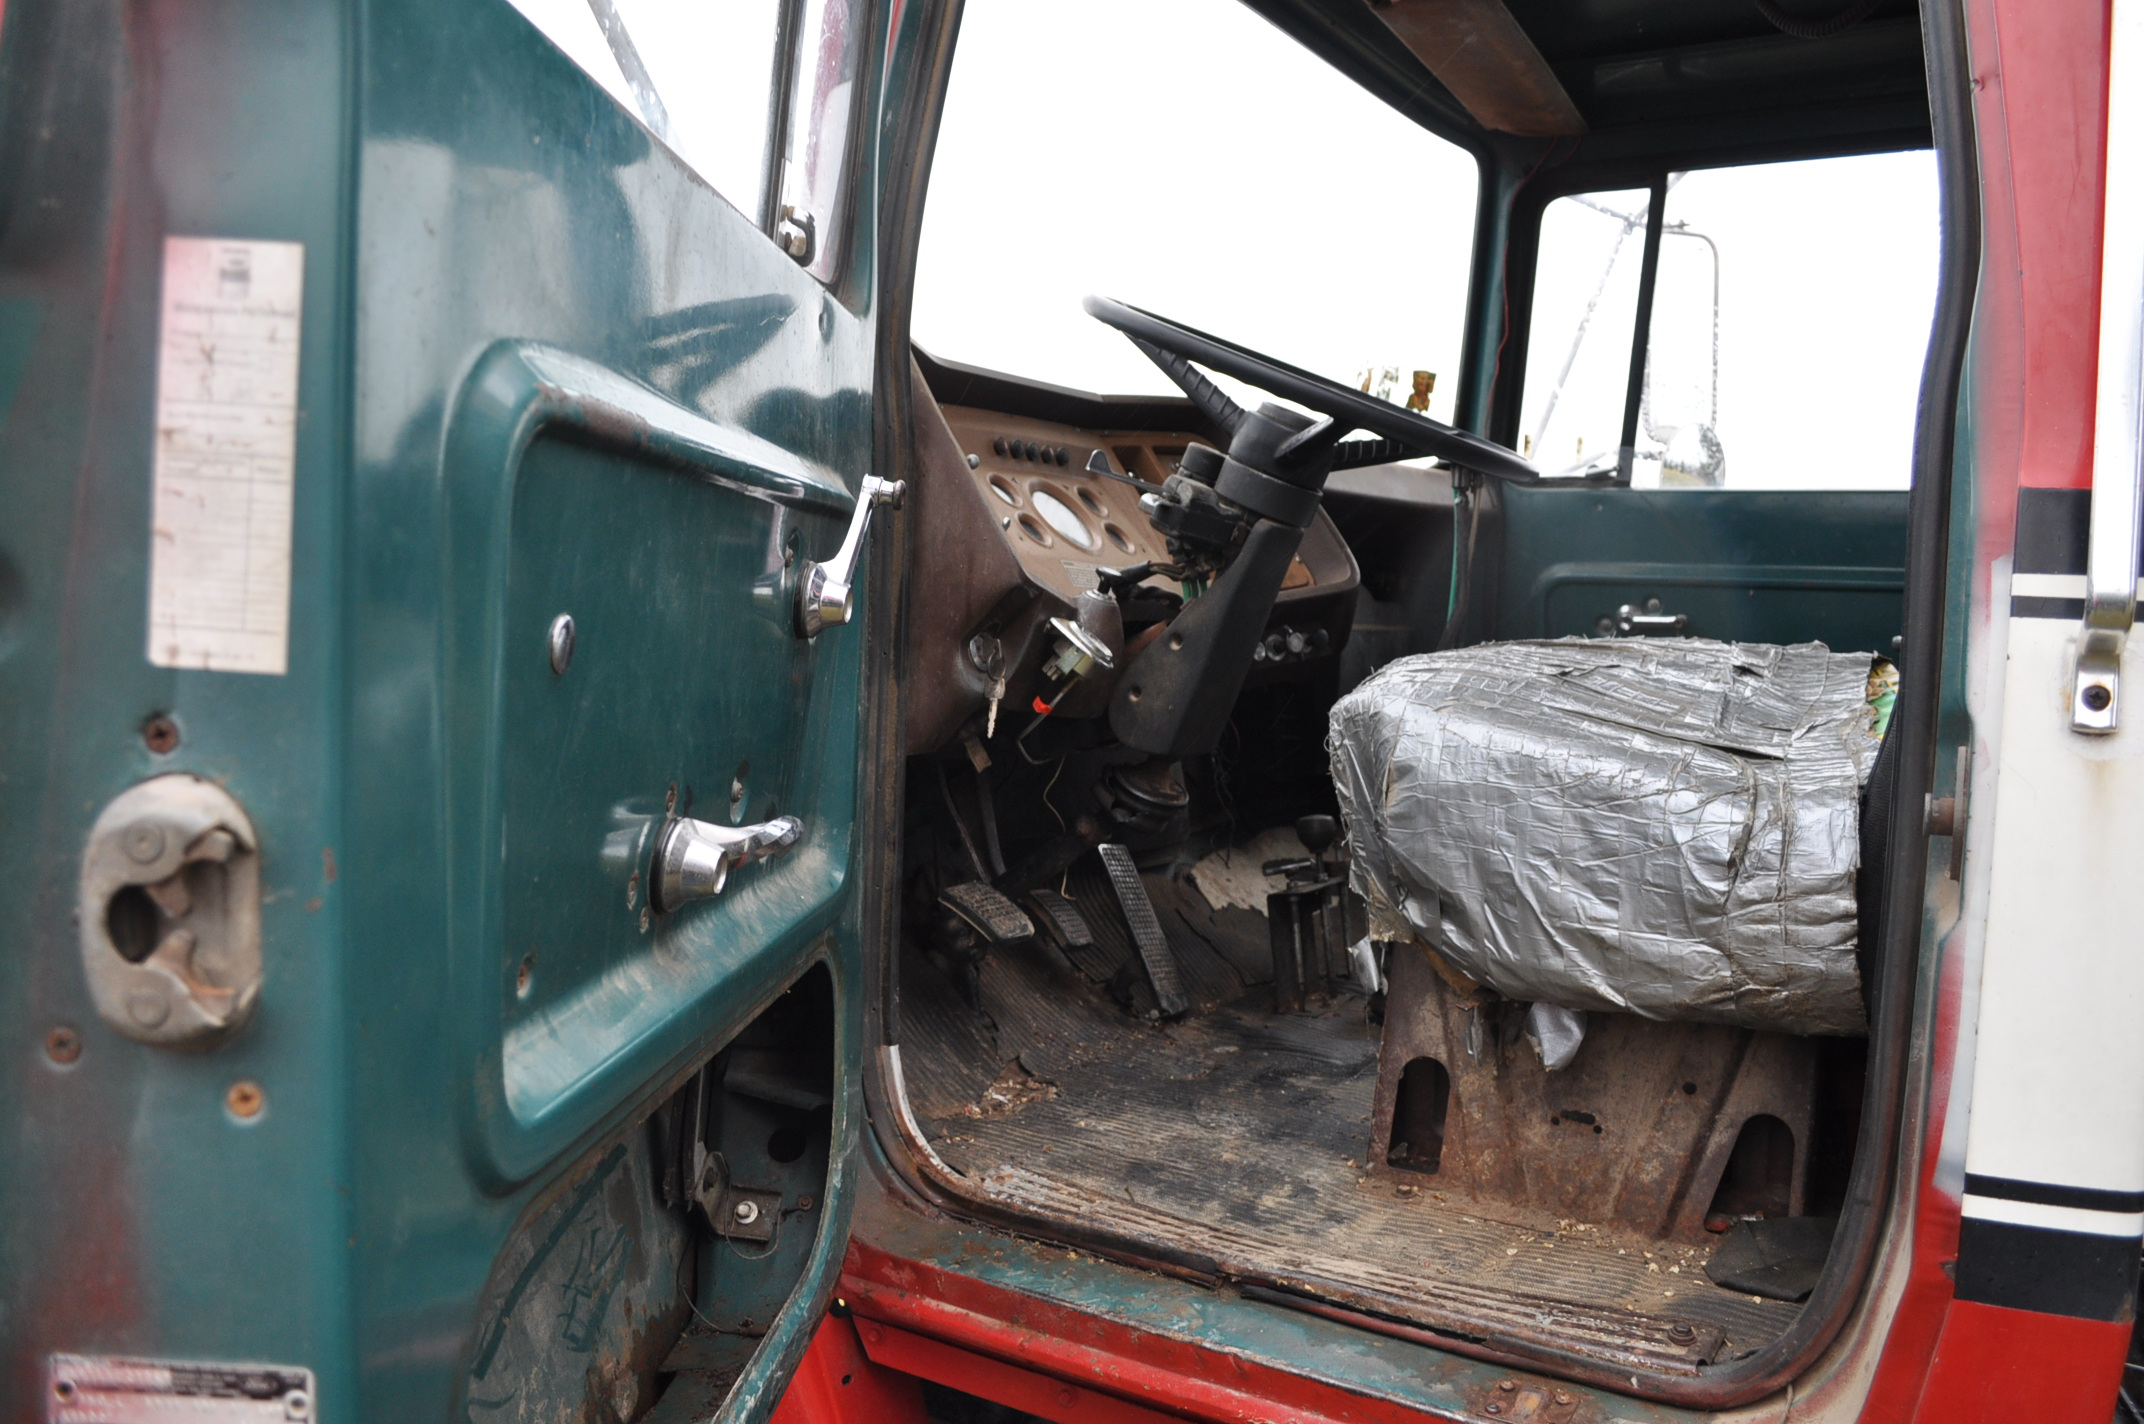 1974 Ford 900 grain truck, tandem axle, gas V-8, 5 + 2, 10.00-20 tires, 18' wood floor, pto, - Image 17 of 26